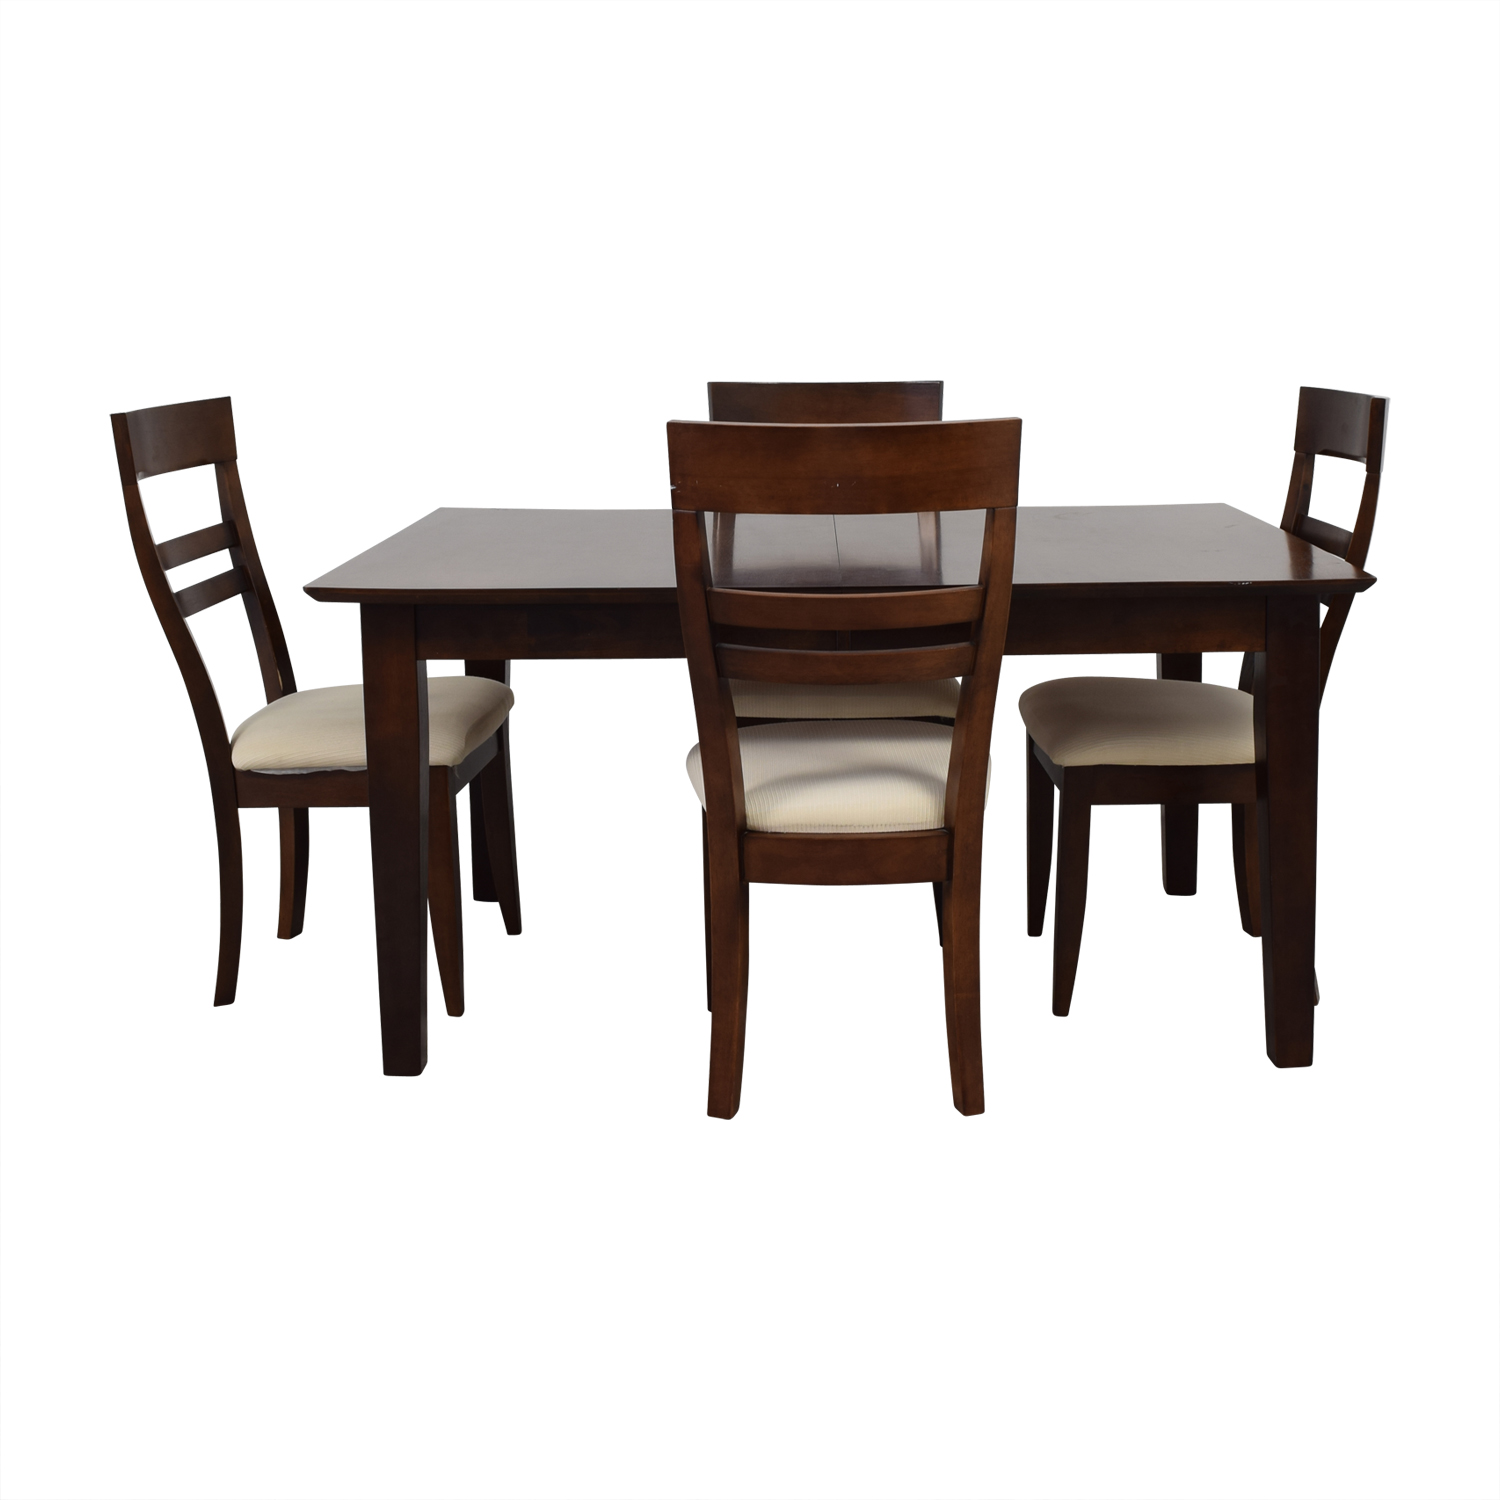 Macy's Macy's Wood Expandable Dining Table with Chairs dimensions